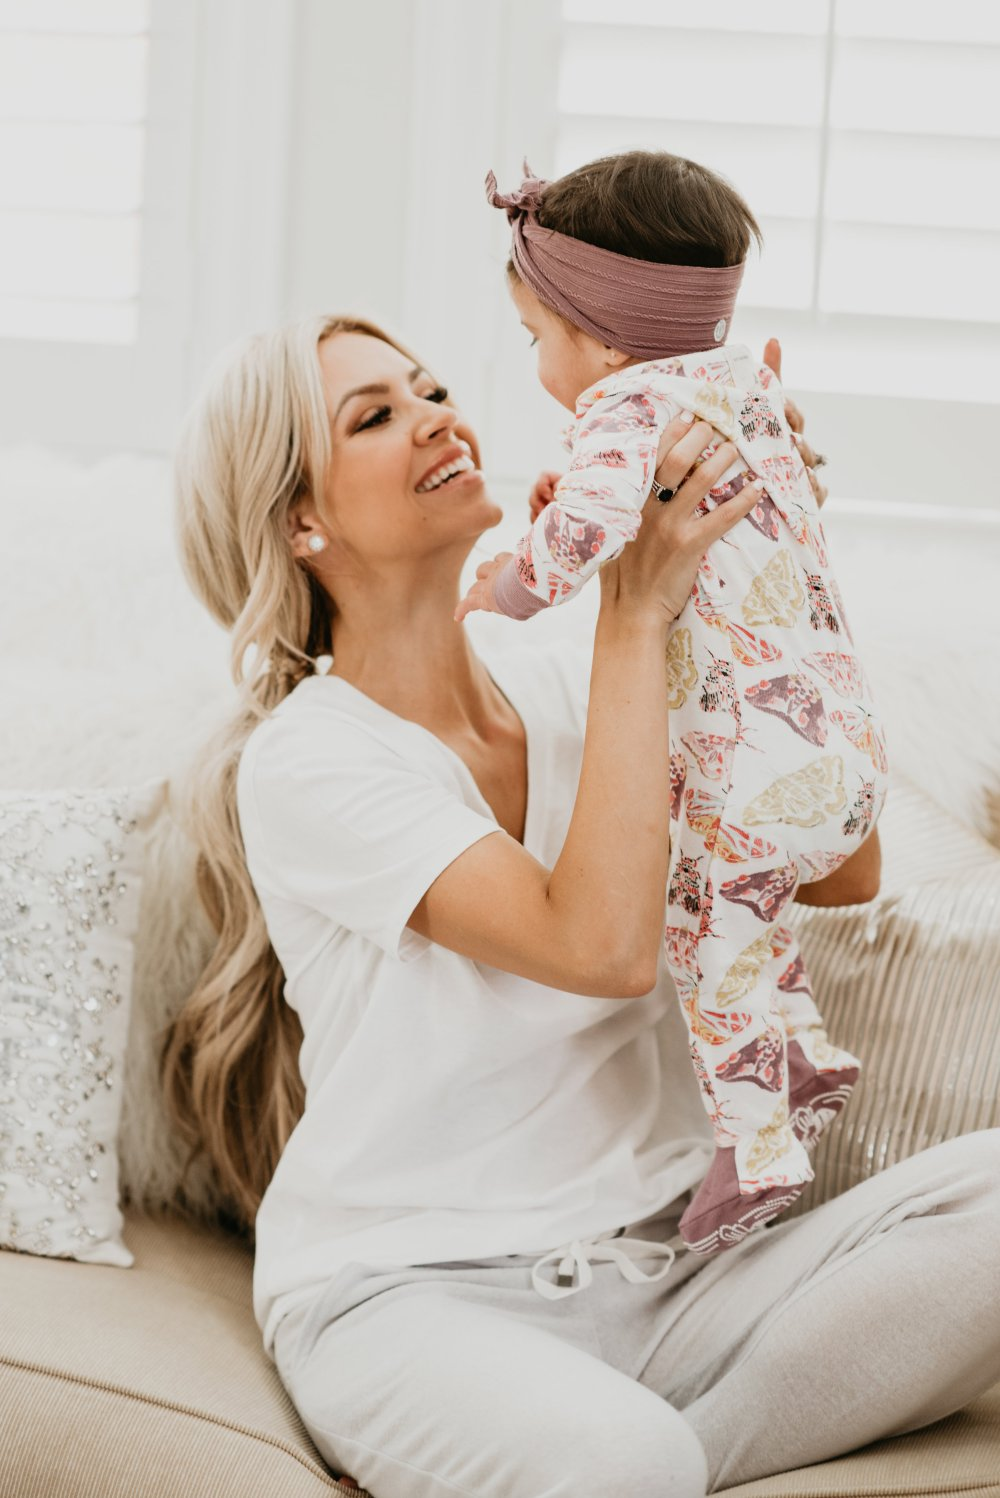 I think we can all agree that family time is the most important! We always change into our comfy clothes when we get home from running errands, have a night in or even a couple hours of down time! These are the most comfy PJs for the kids and I! #trulydestiny #loungewear #comfywear #casualwear #babygirlfashion